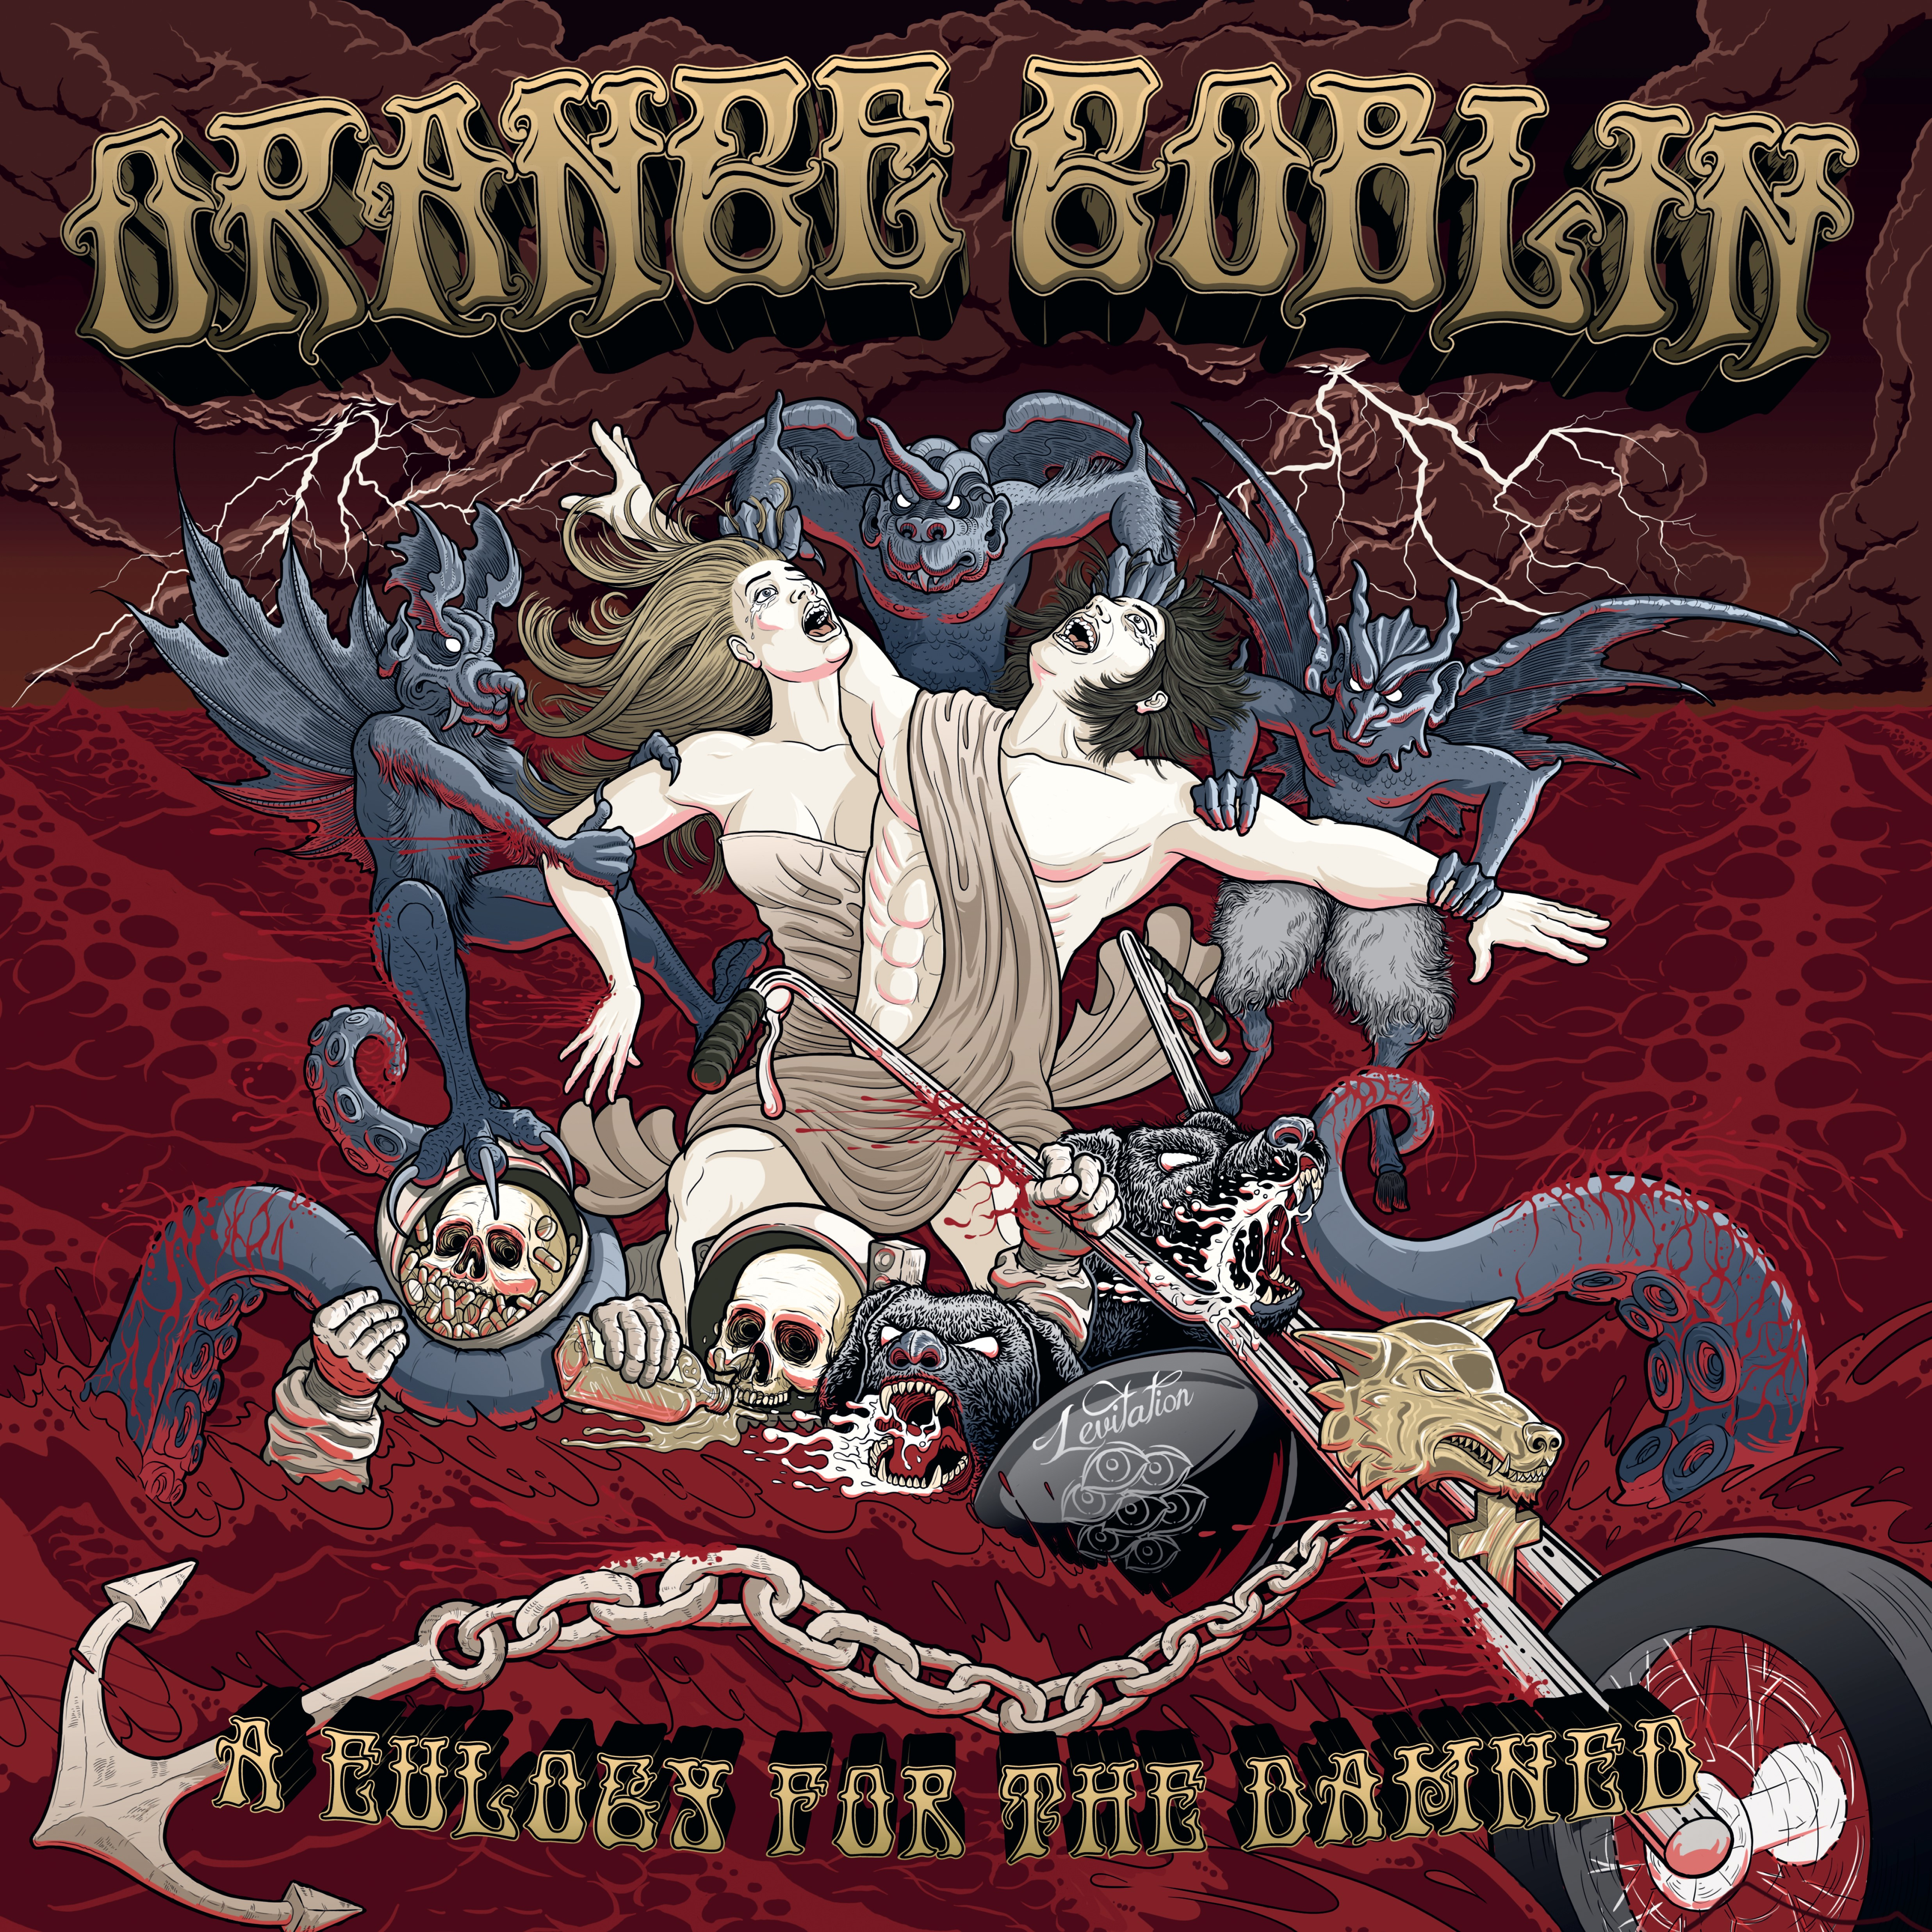 Orange Goblin - Eulogy For The Damned [RSD Drops 2021]